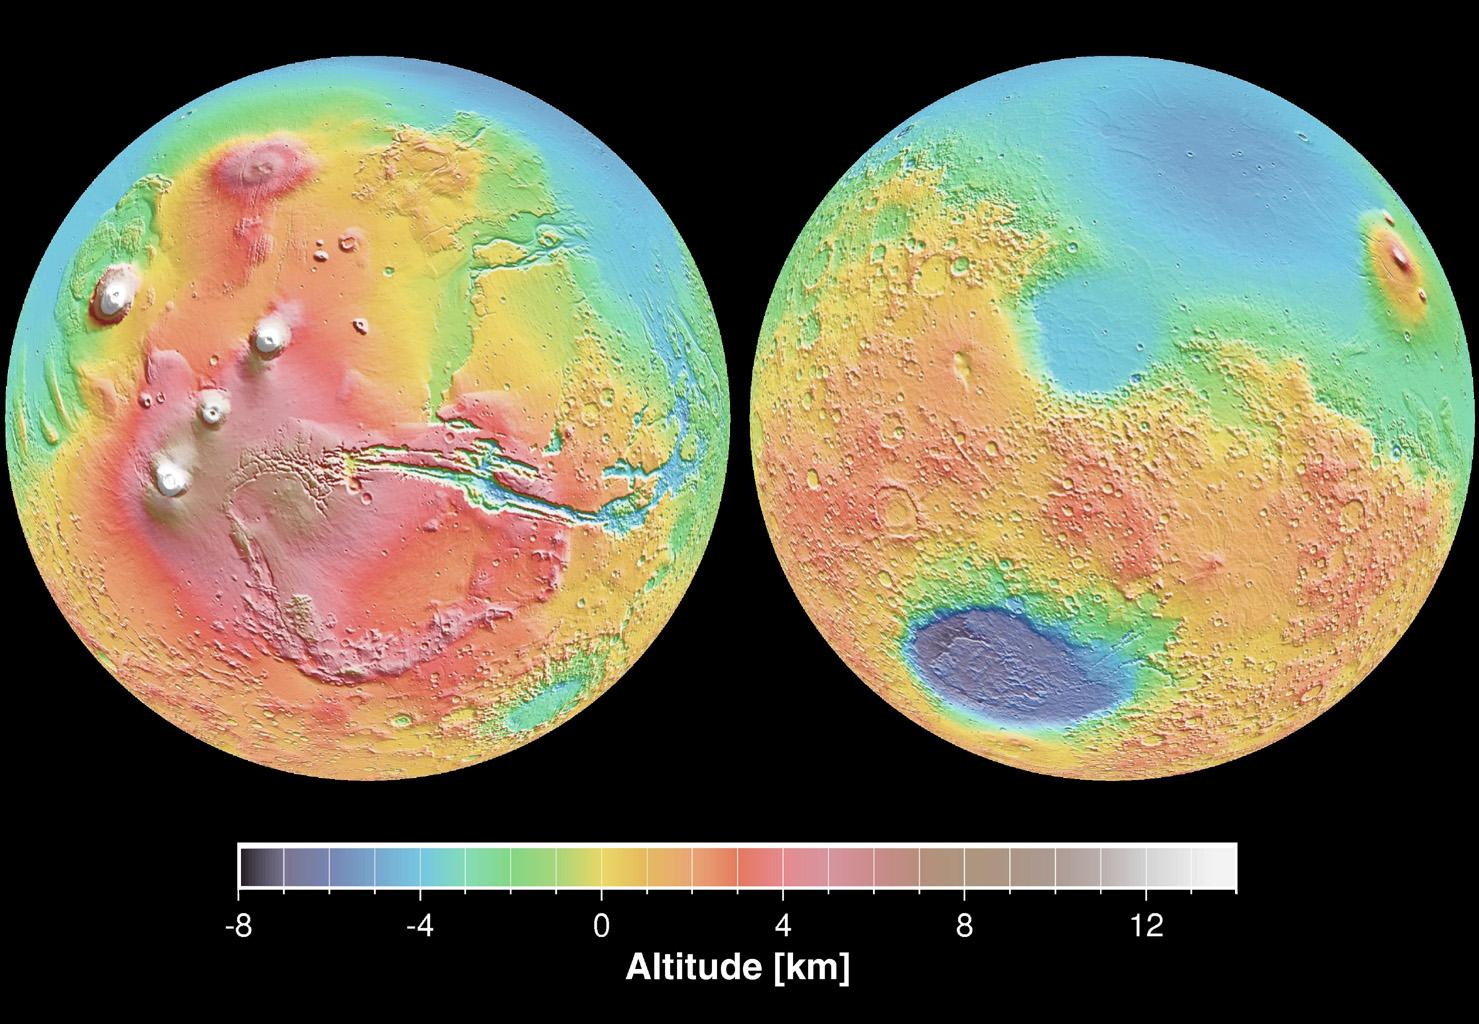 These maps are global false-color topographic views of Mars at different orientations from NASA's Mars Global Surveyor. The maps are orthographic projections that contain over 200,000,000 points and about 5,000,000 altimetric crossovers.